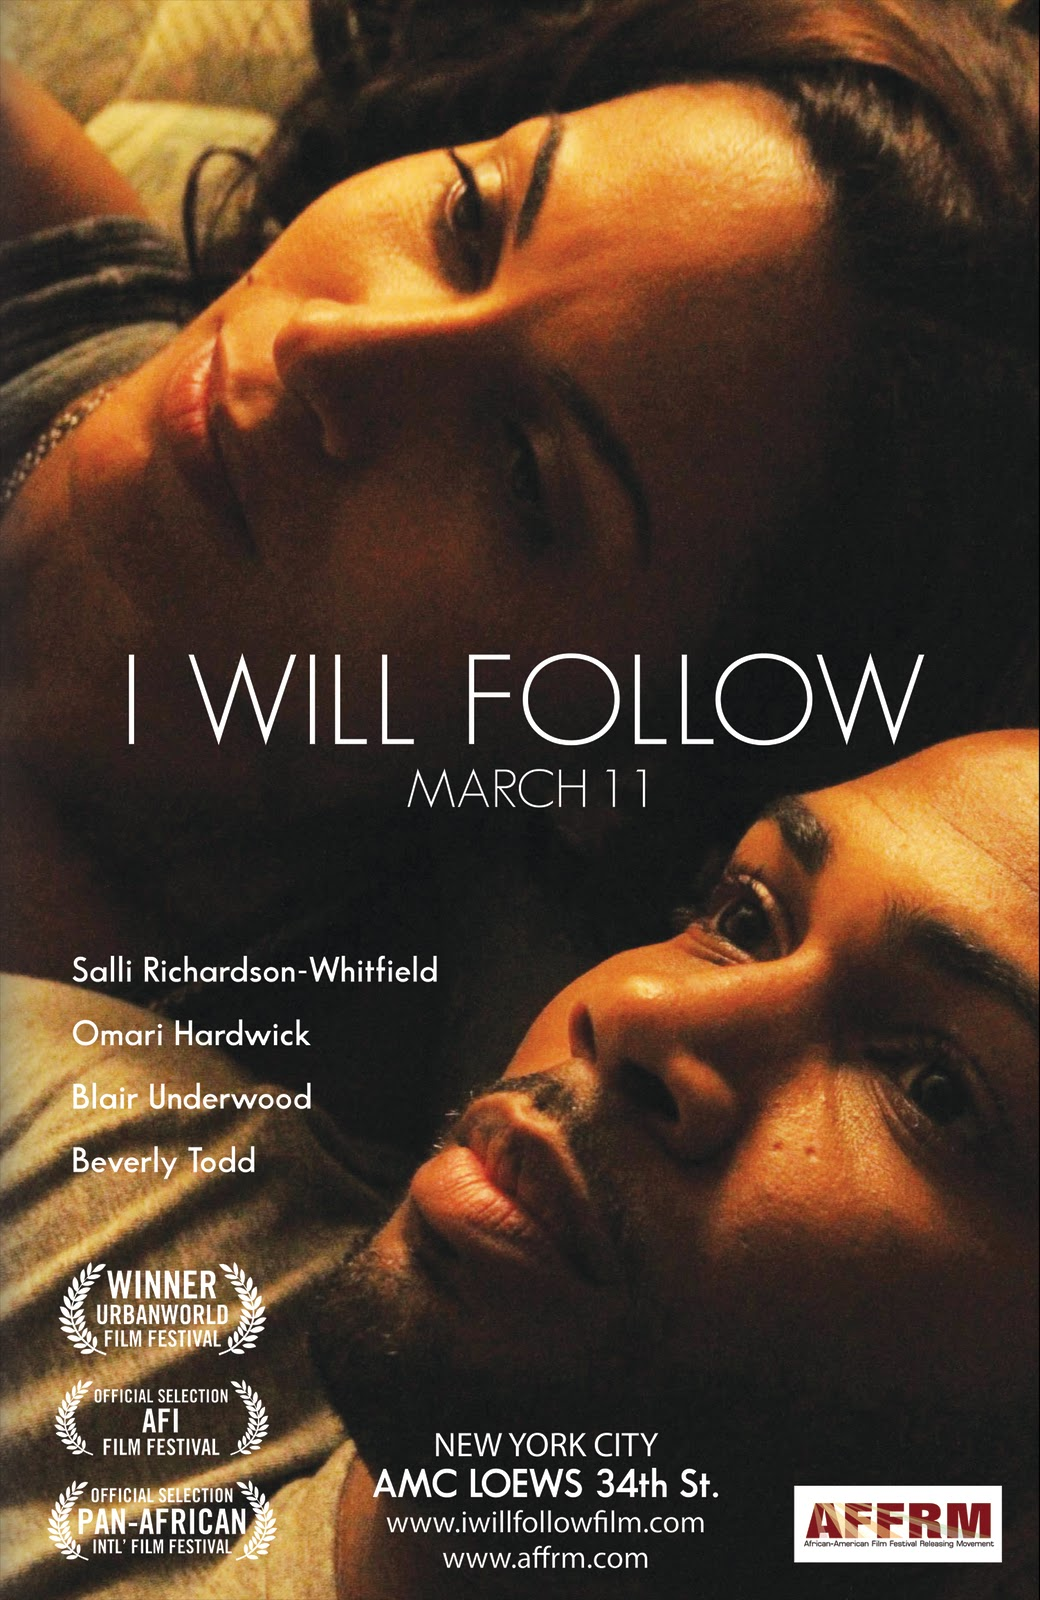 cms film analysis paper image result for i will follow movie